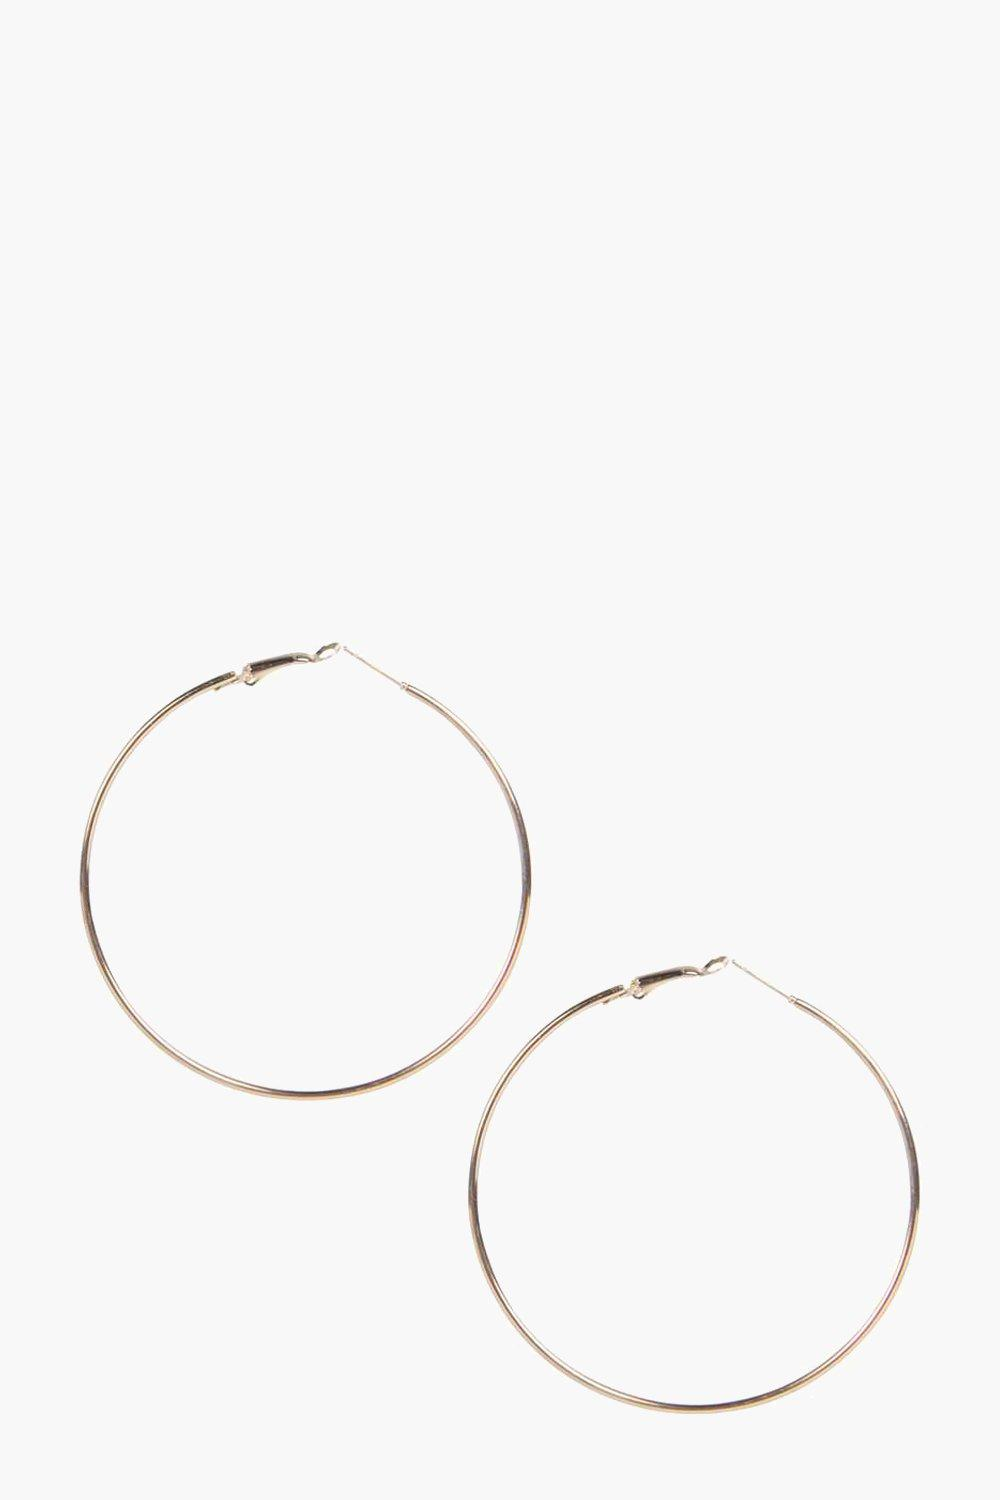 Sophia Plain 6.5cm Hoop Earrings